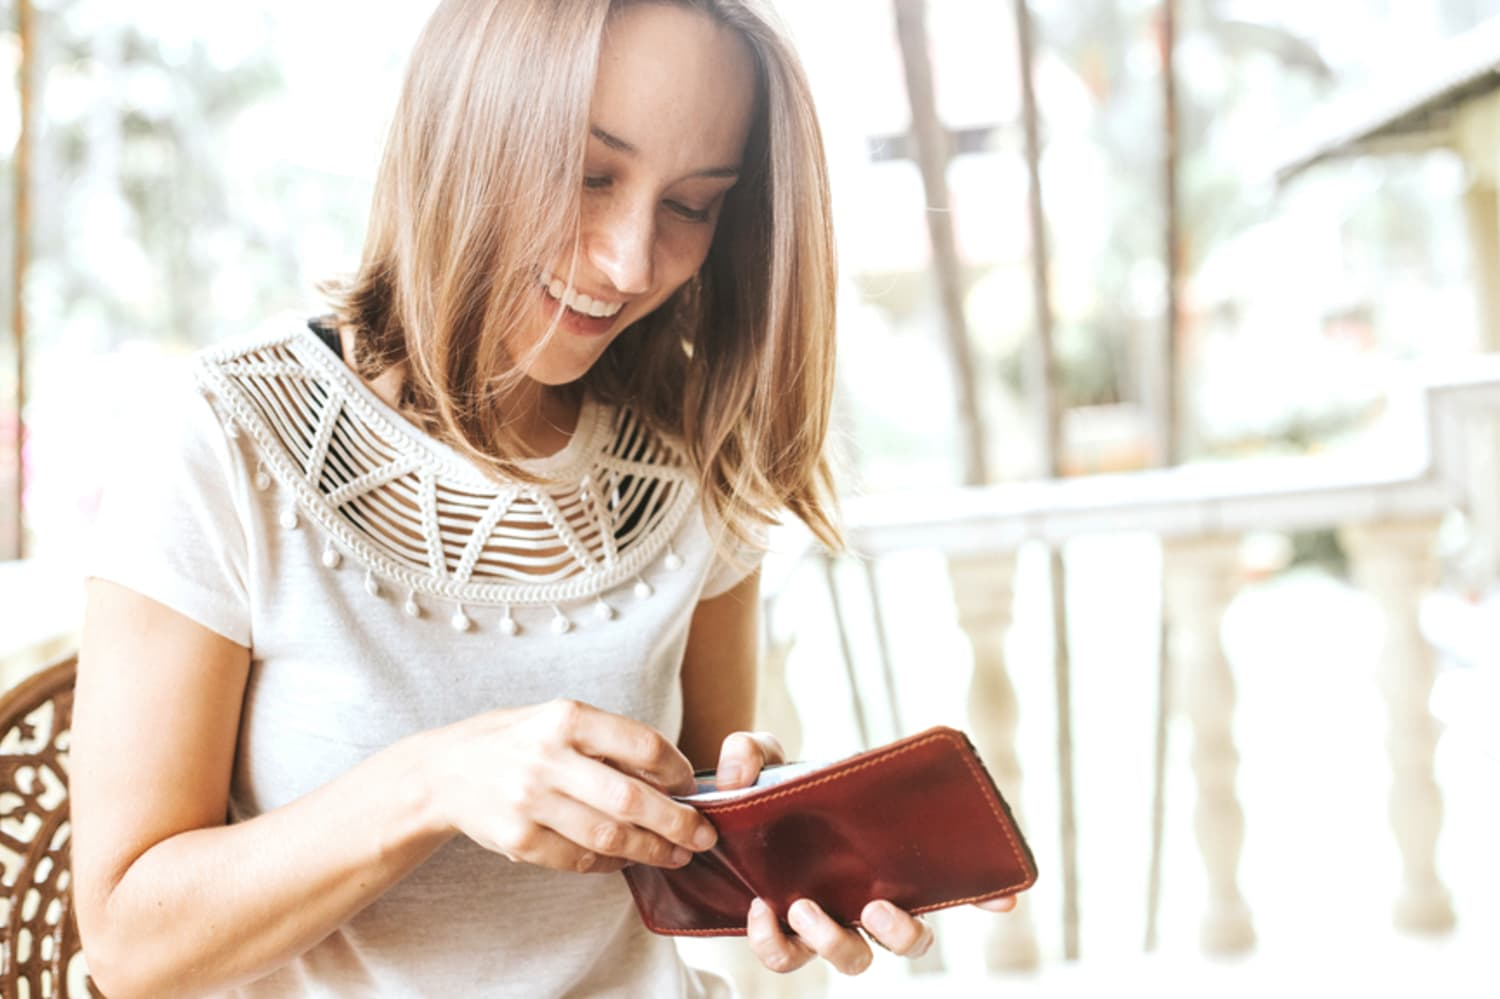 7 Things You Should Always Pay for With a Credit Card (and a Few Things You Should Never)